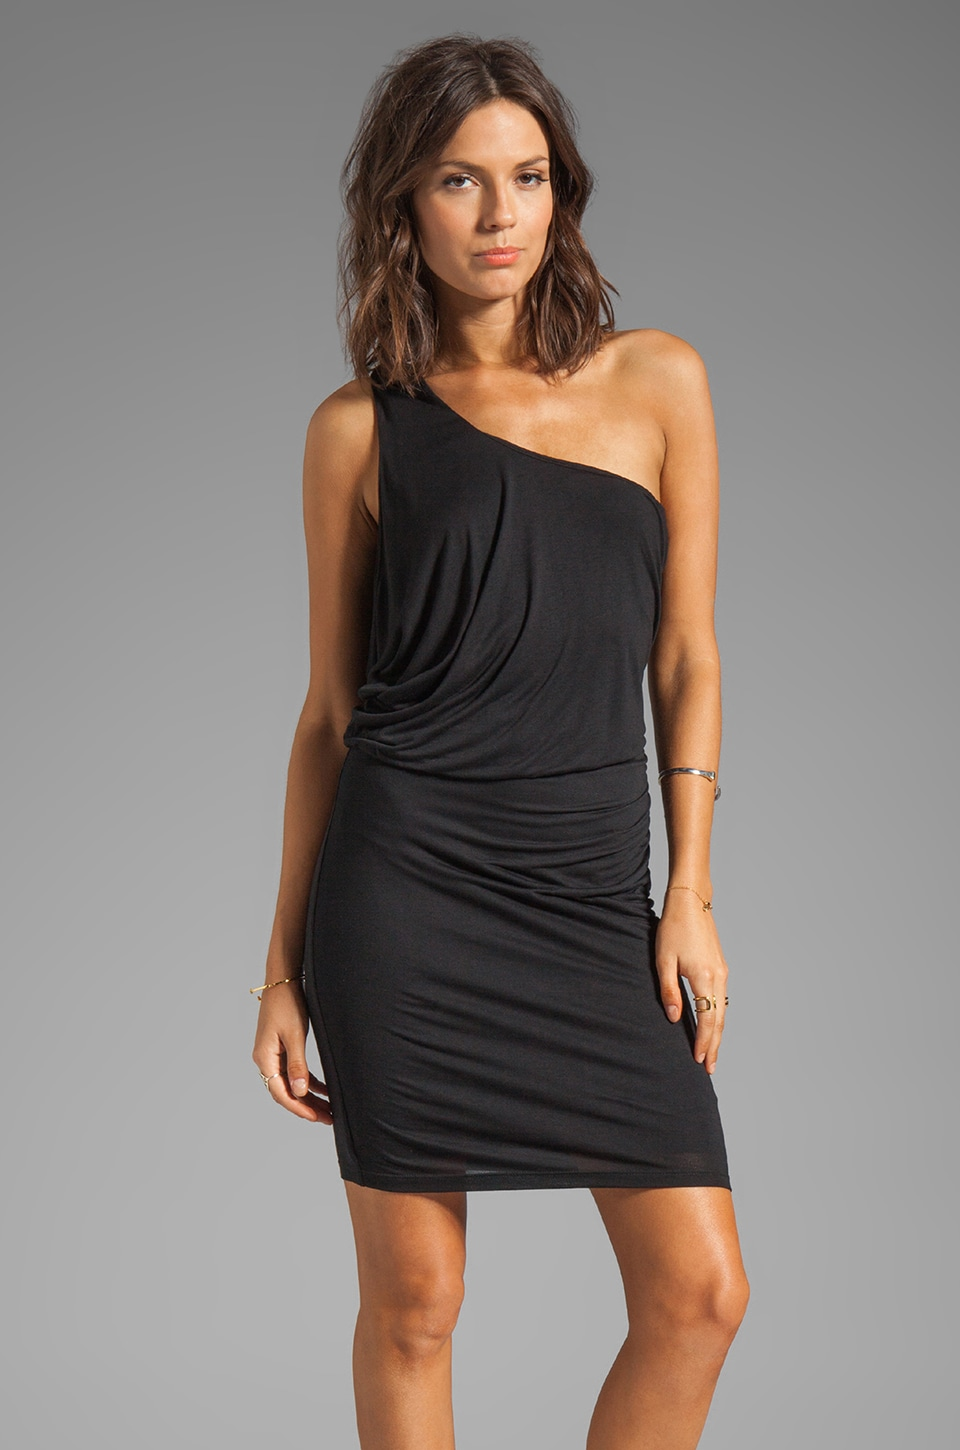 Velvet by Graham & Spencer Nadalia New Fine Slinky Dress in Black